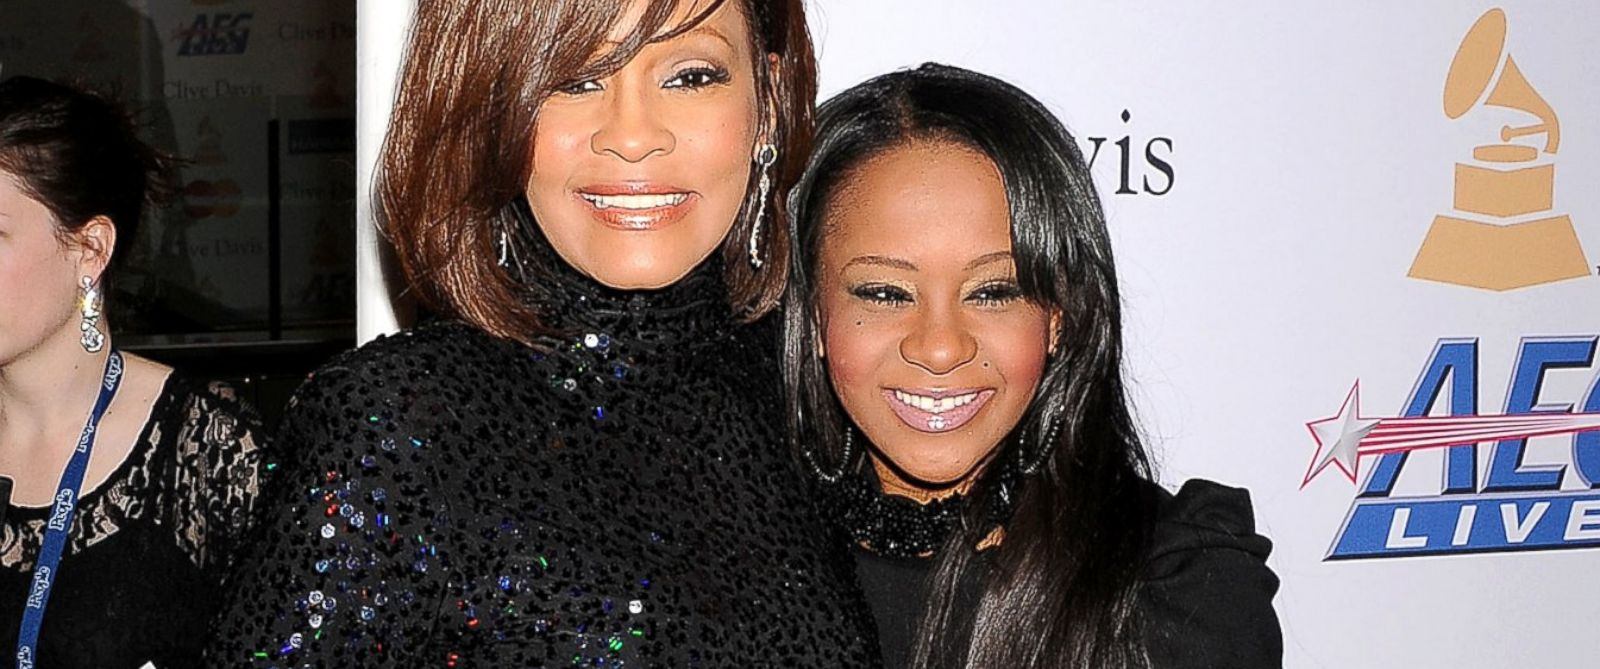 PHOTO: Whitney Houston and Bobbi Kristina Brown arrive at the Clive Davis And The Recording Academys 2011 Pre-GRAMMY Gala at The Beverly Hilton hotel, Feb. 12, 2011, in Beverly Hills, Calif.